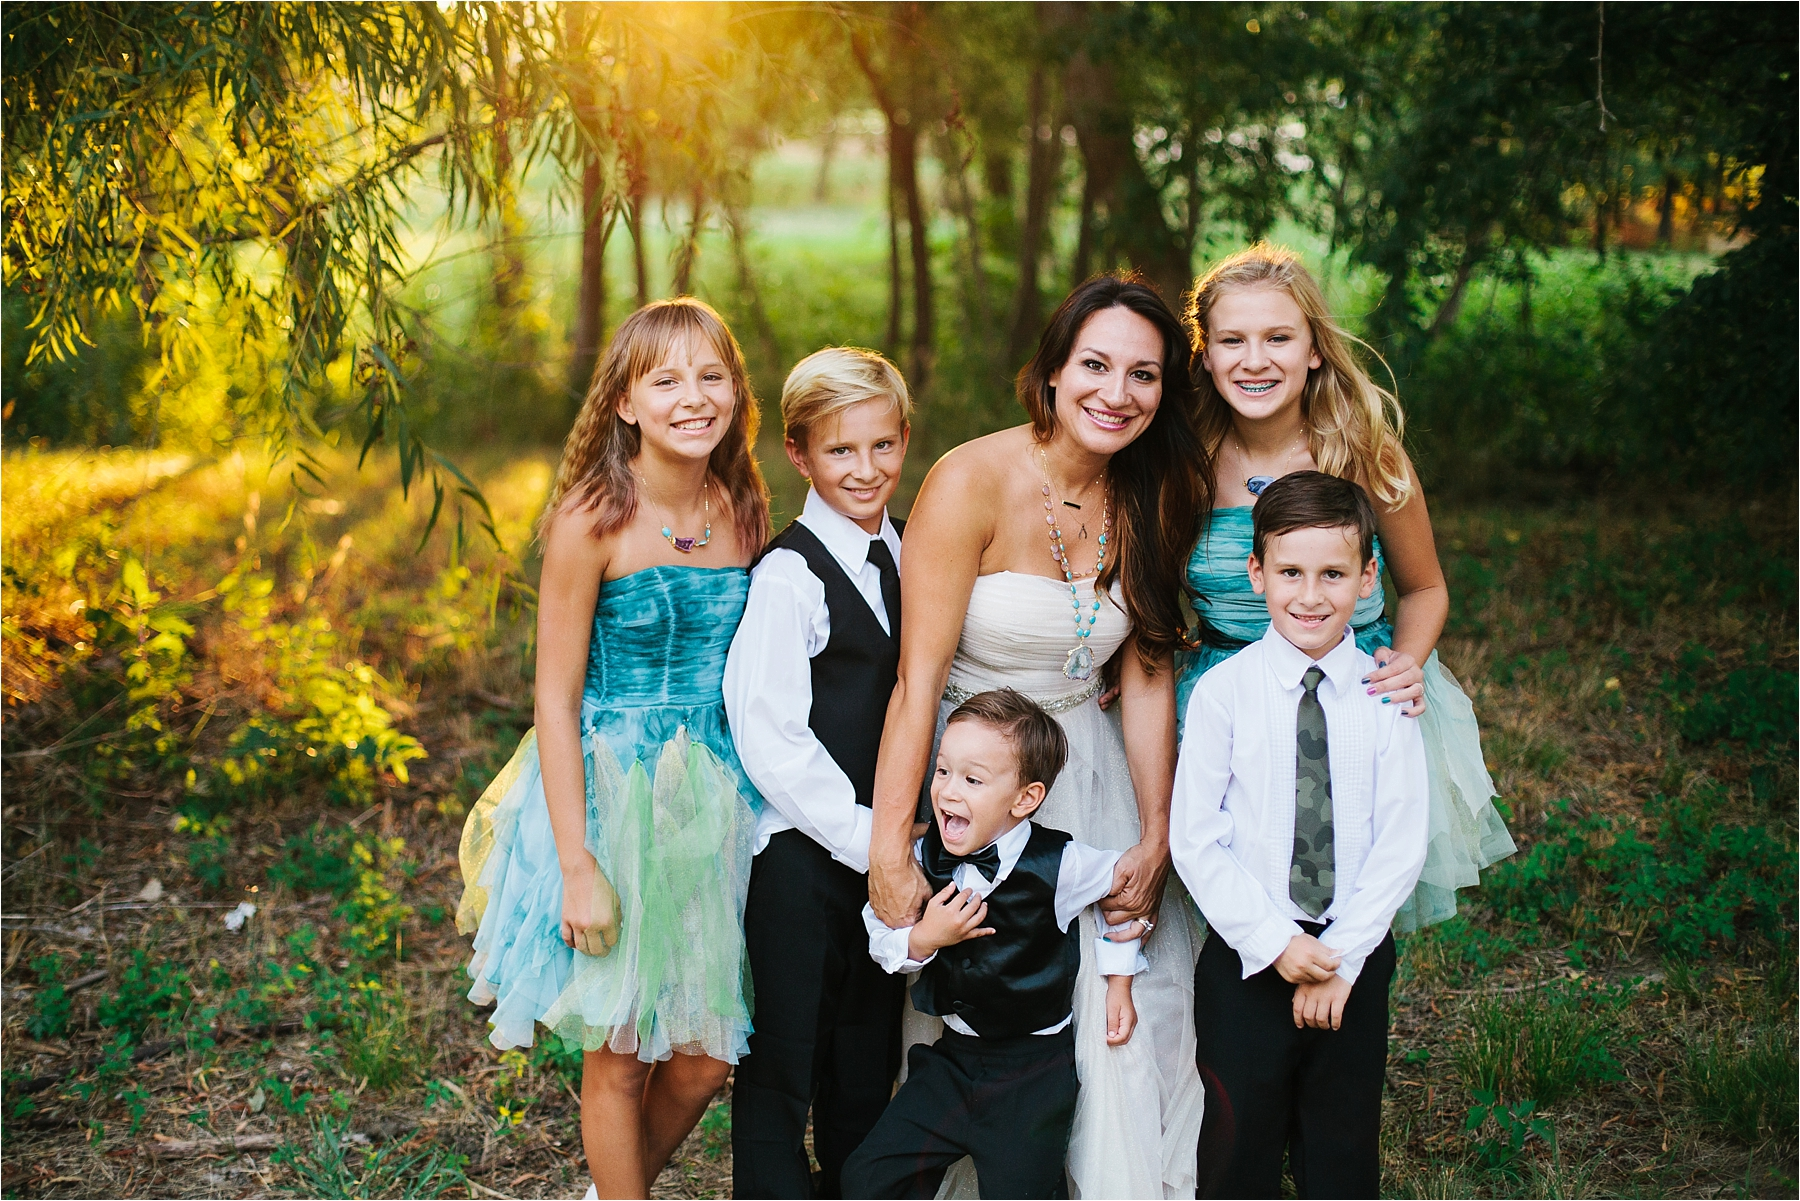 //The Miller Family | a formal, fun, light filled family ...